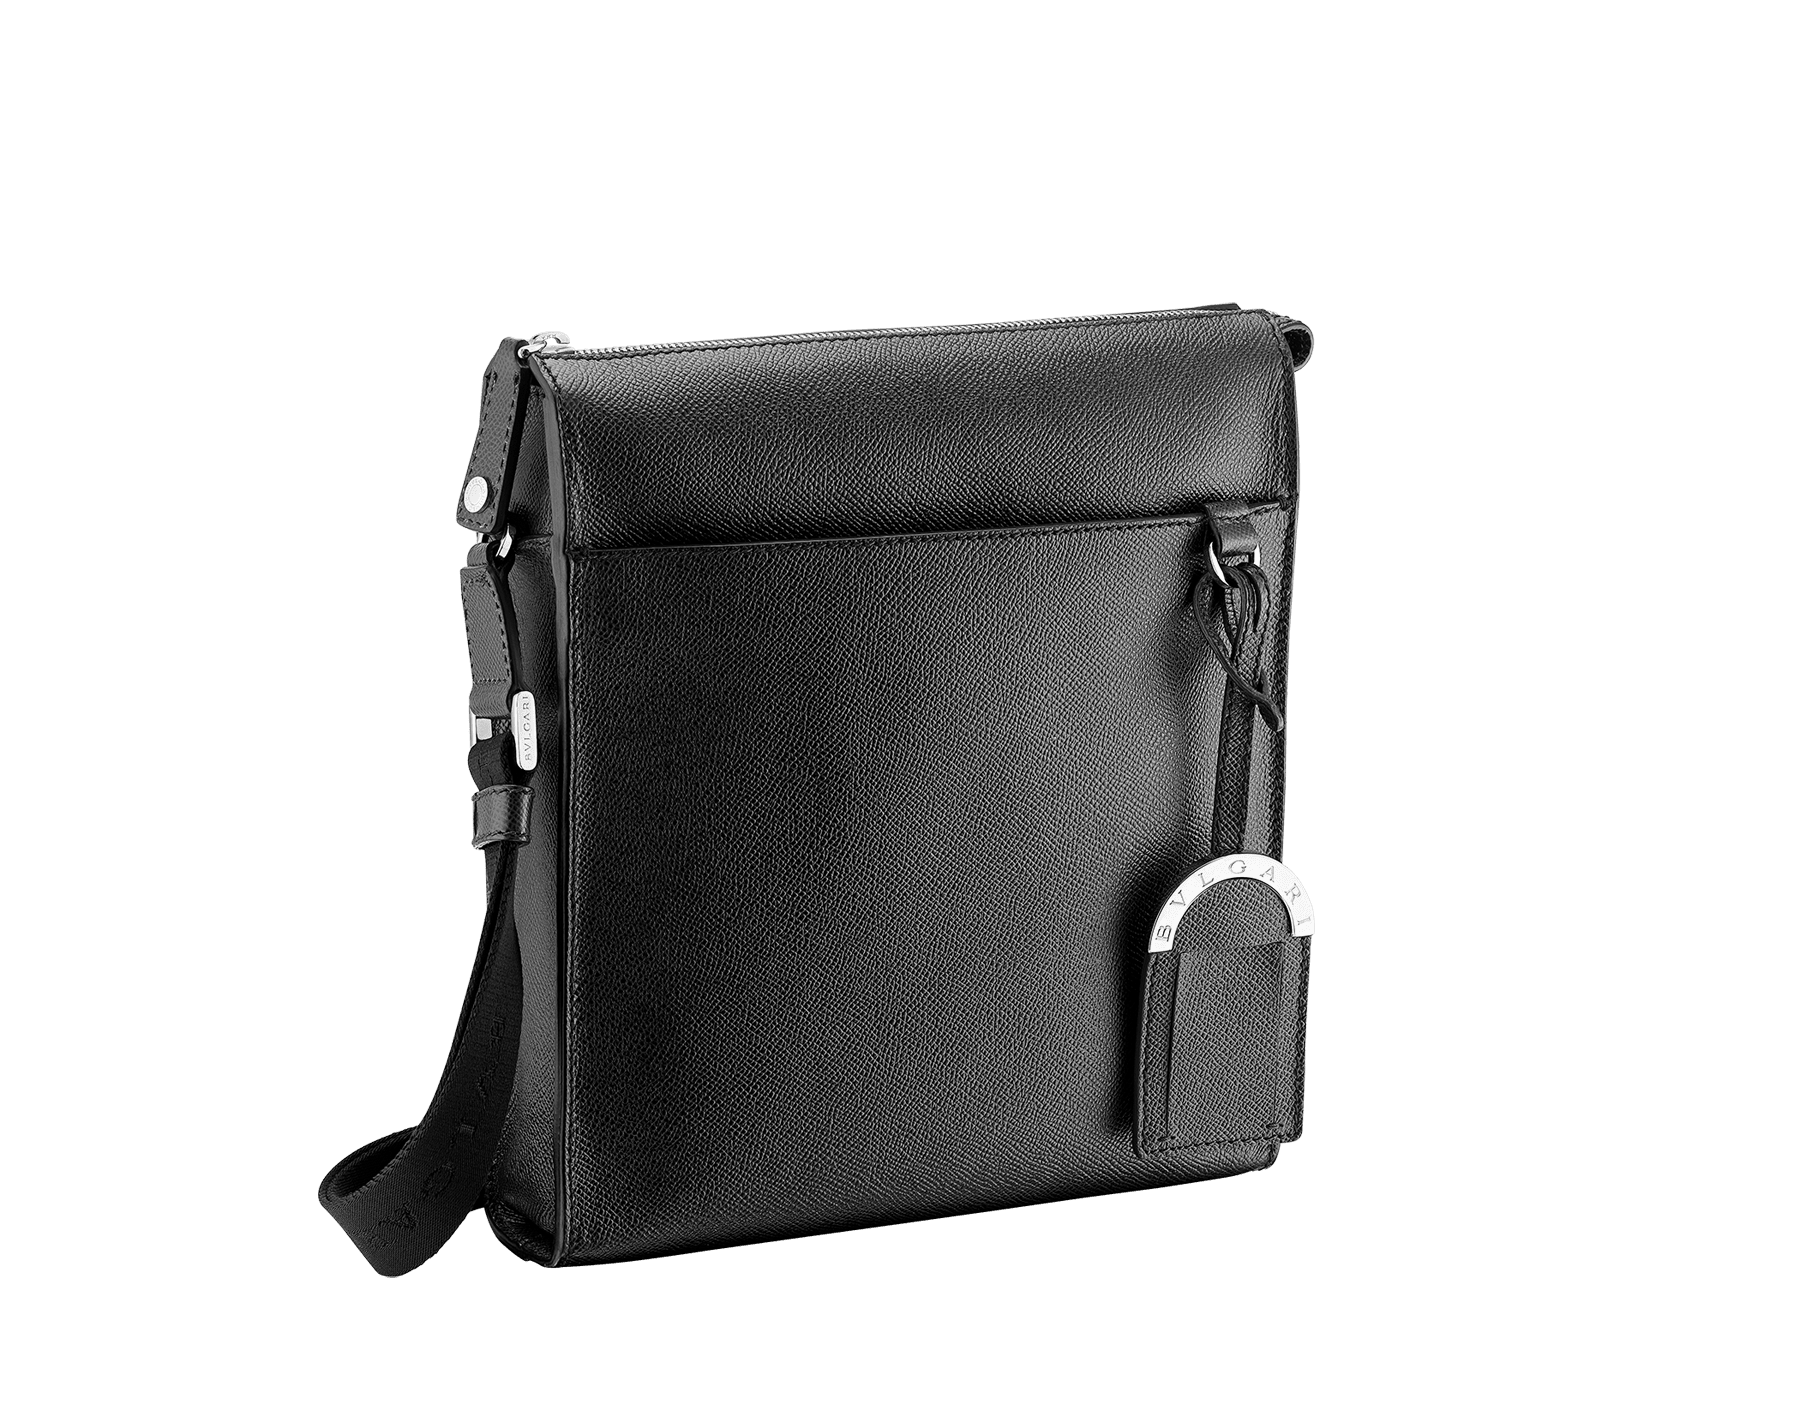 Black grain calf leather zip-top messenger bag with brass palladium hardware, two open pockets and the Bulgari logo metal tag inside. One open outside pocket, iconic detachable label tag and adjustable shoulder strap. 37628 image 2